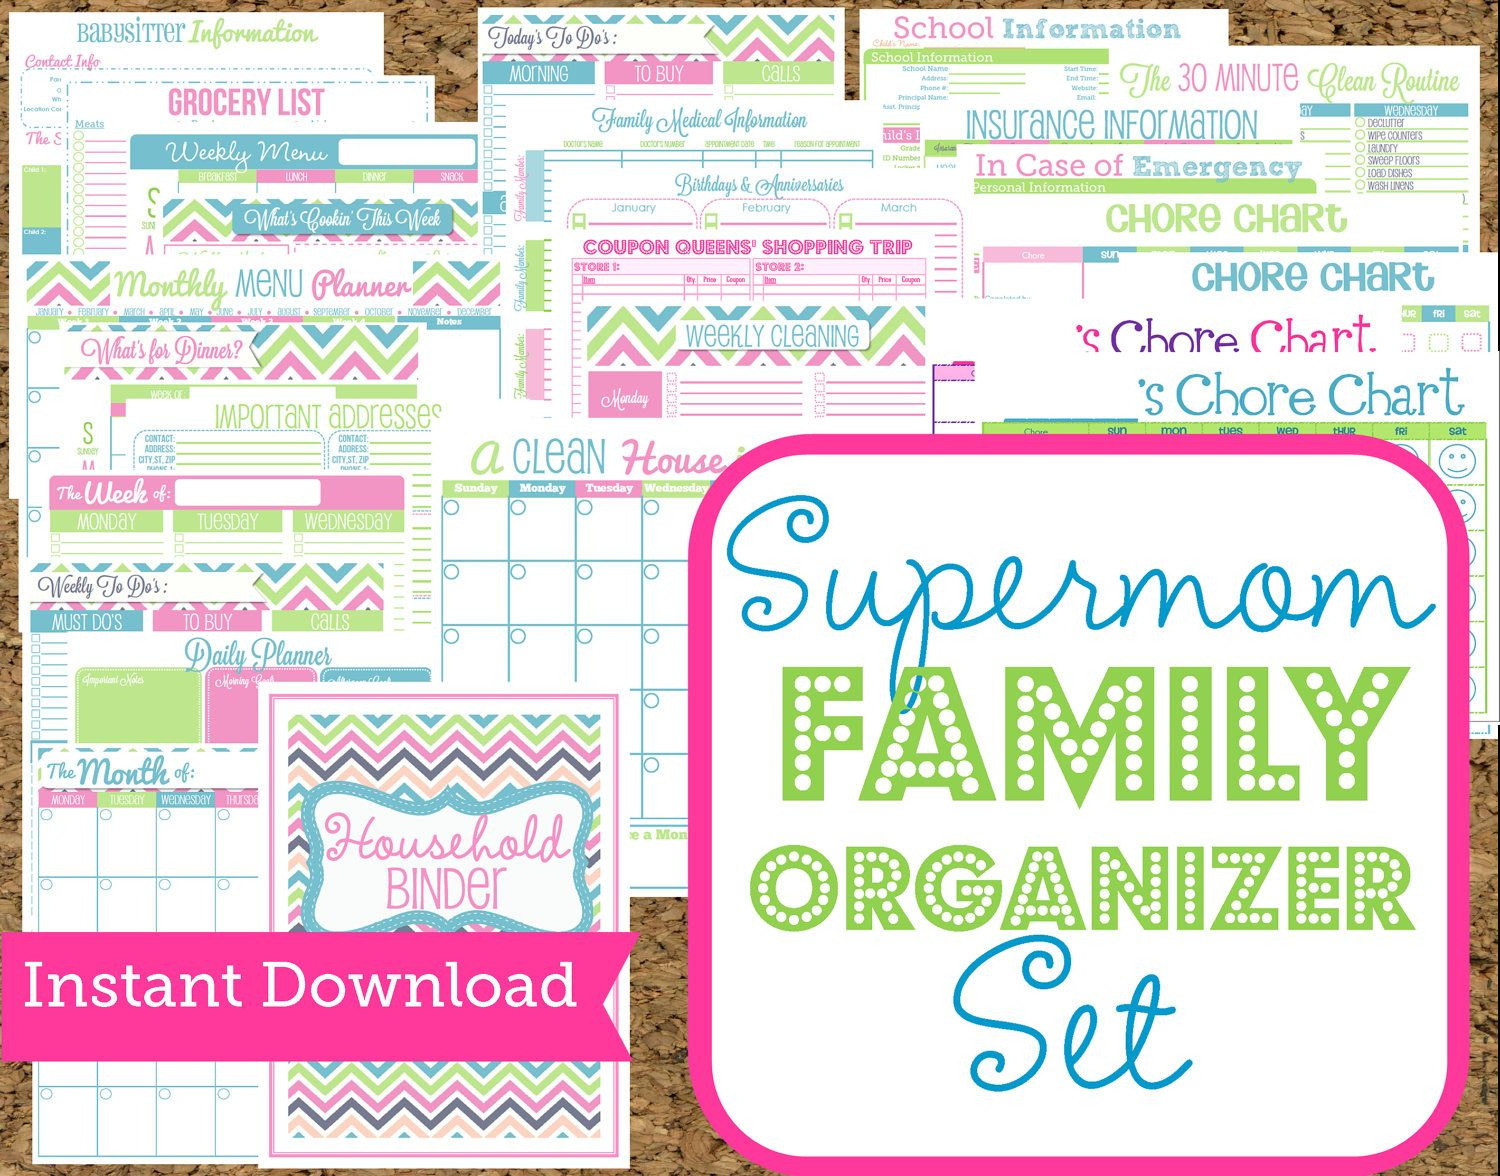 Instant Download Mom Planners Home Organization Printables